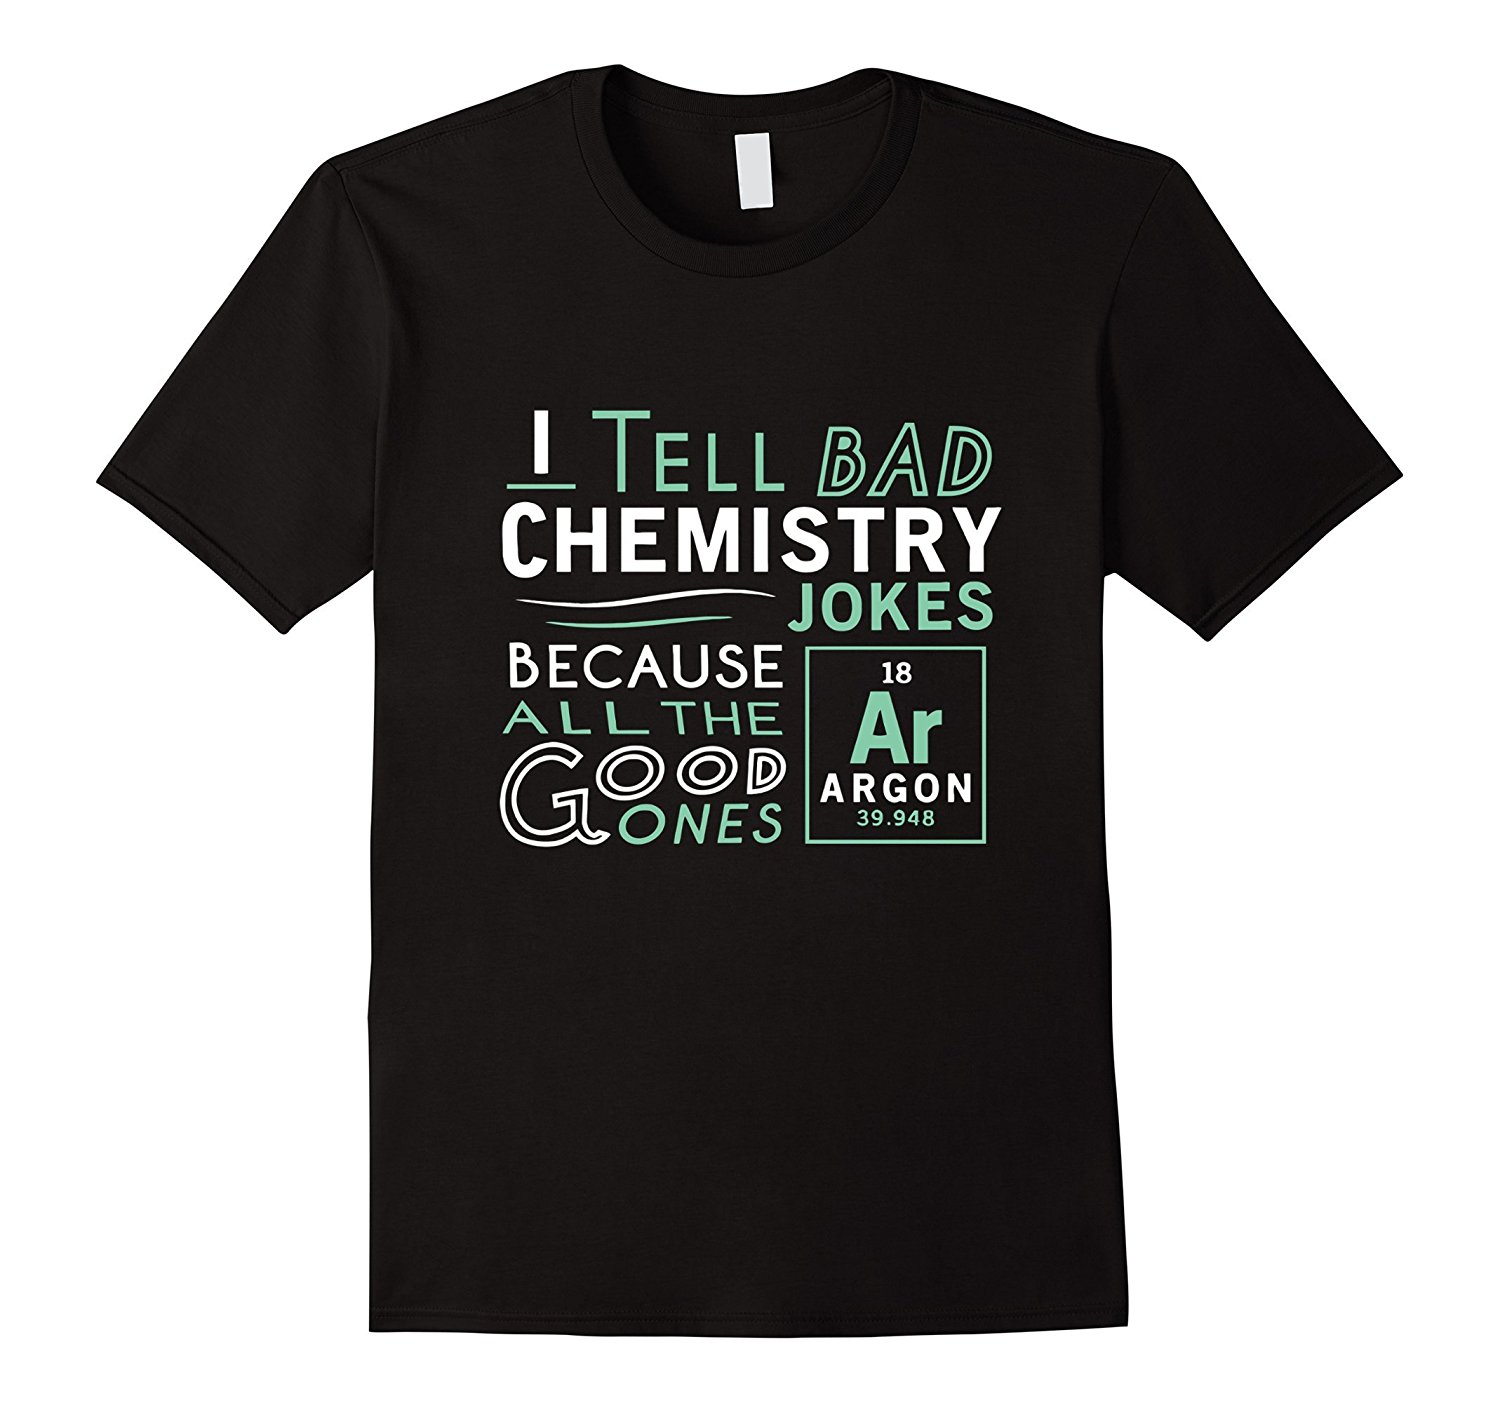 Funny Chemistry T-shirts Re: Bad Jokes and Argon Fashion Men T Shirts Round Neck Unique Classic Cotton Men Top Tee Plus Size